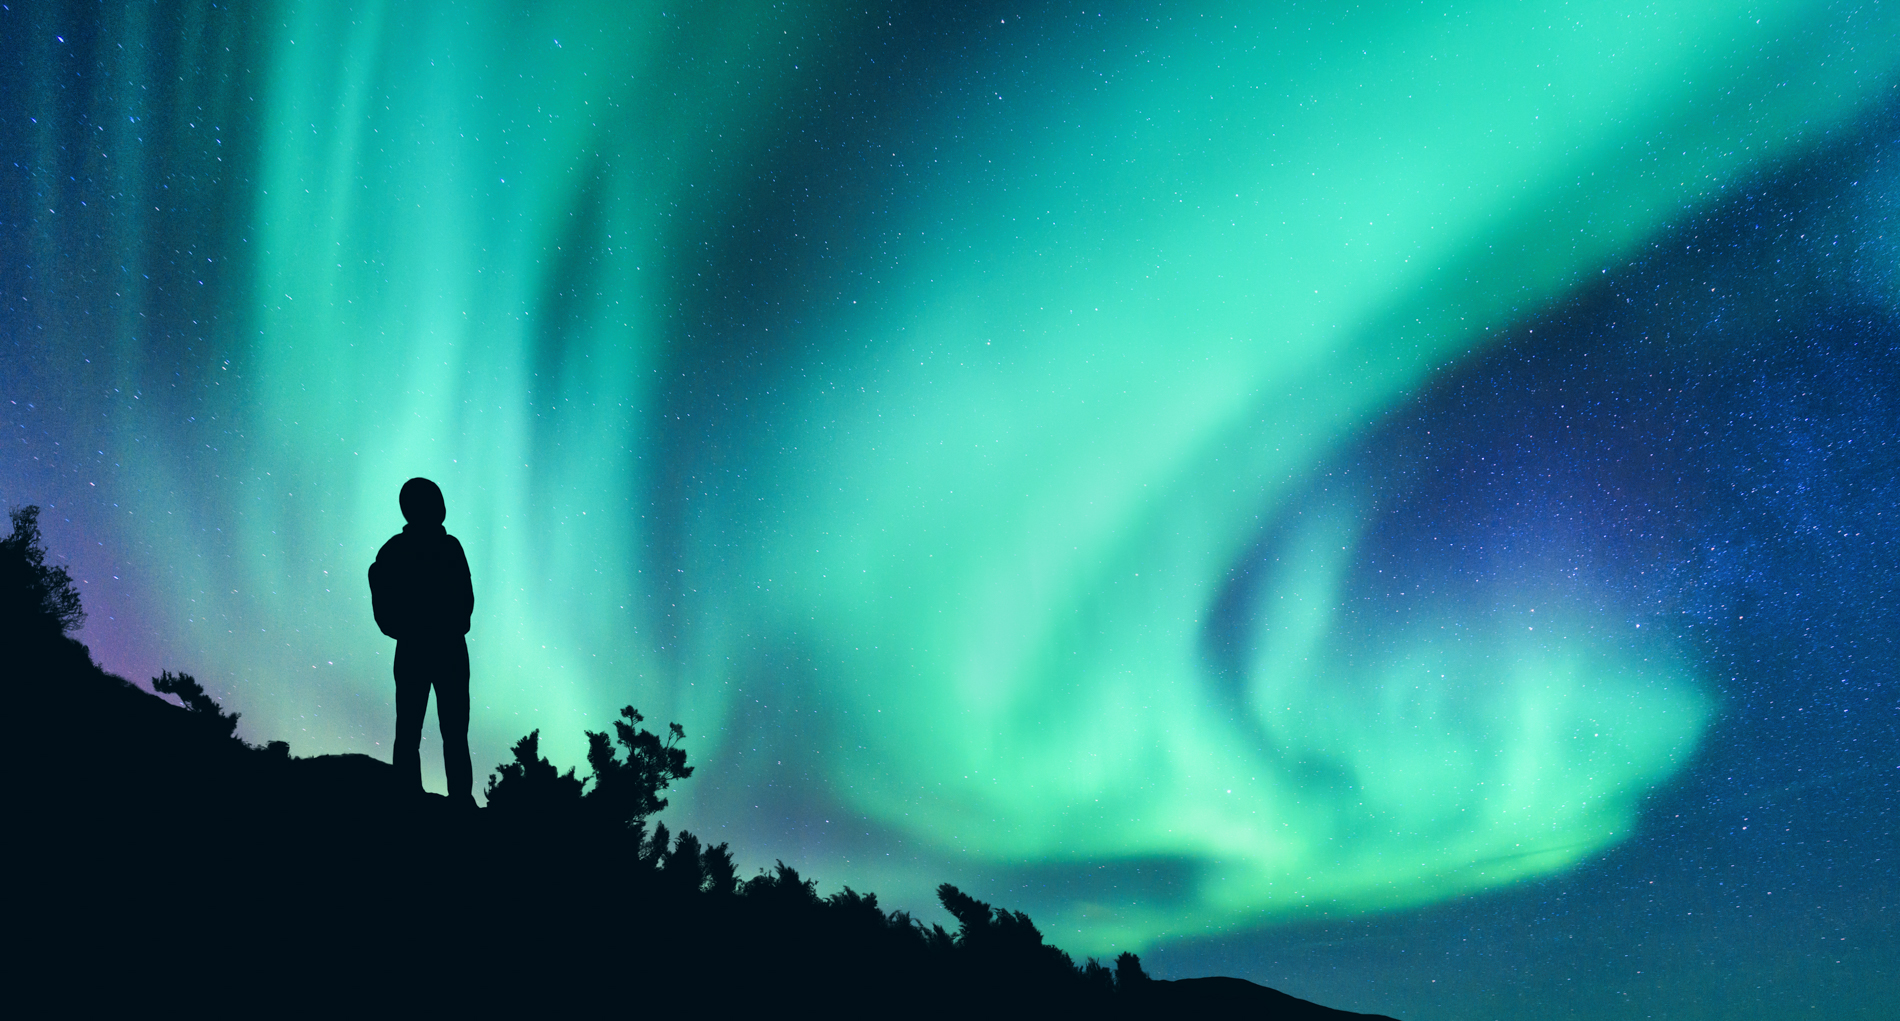 aurora-borealis-and-silhouette-of-a-woman-with-3UB47KX.jpg